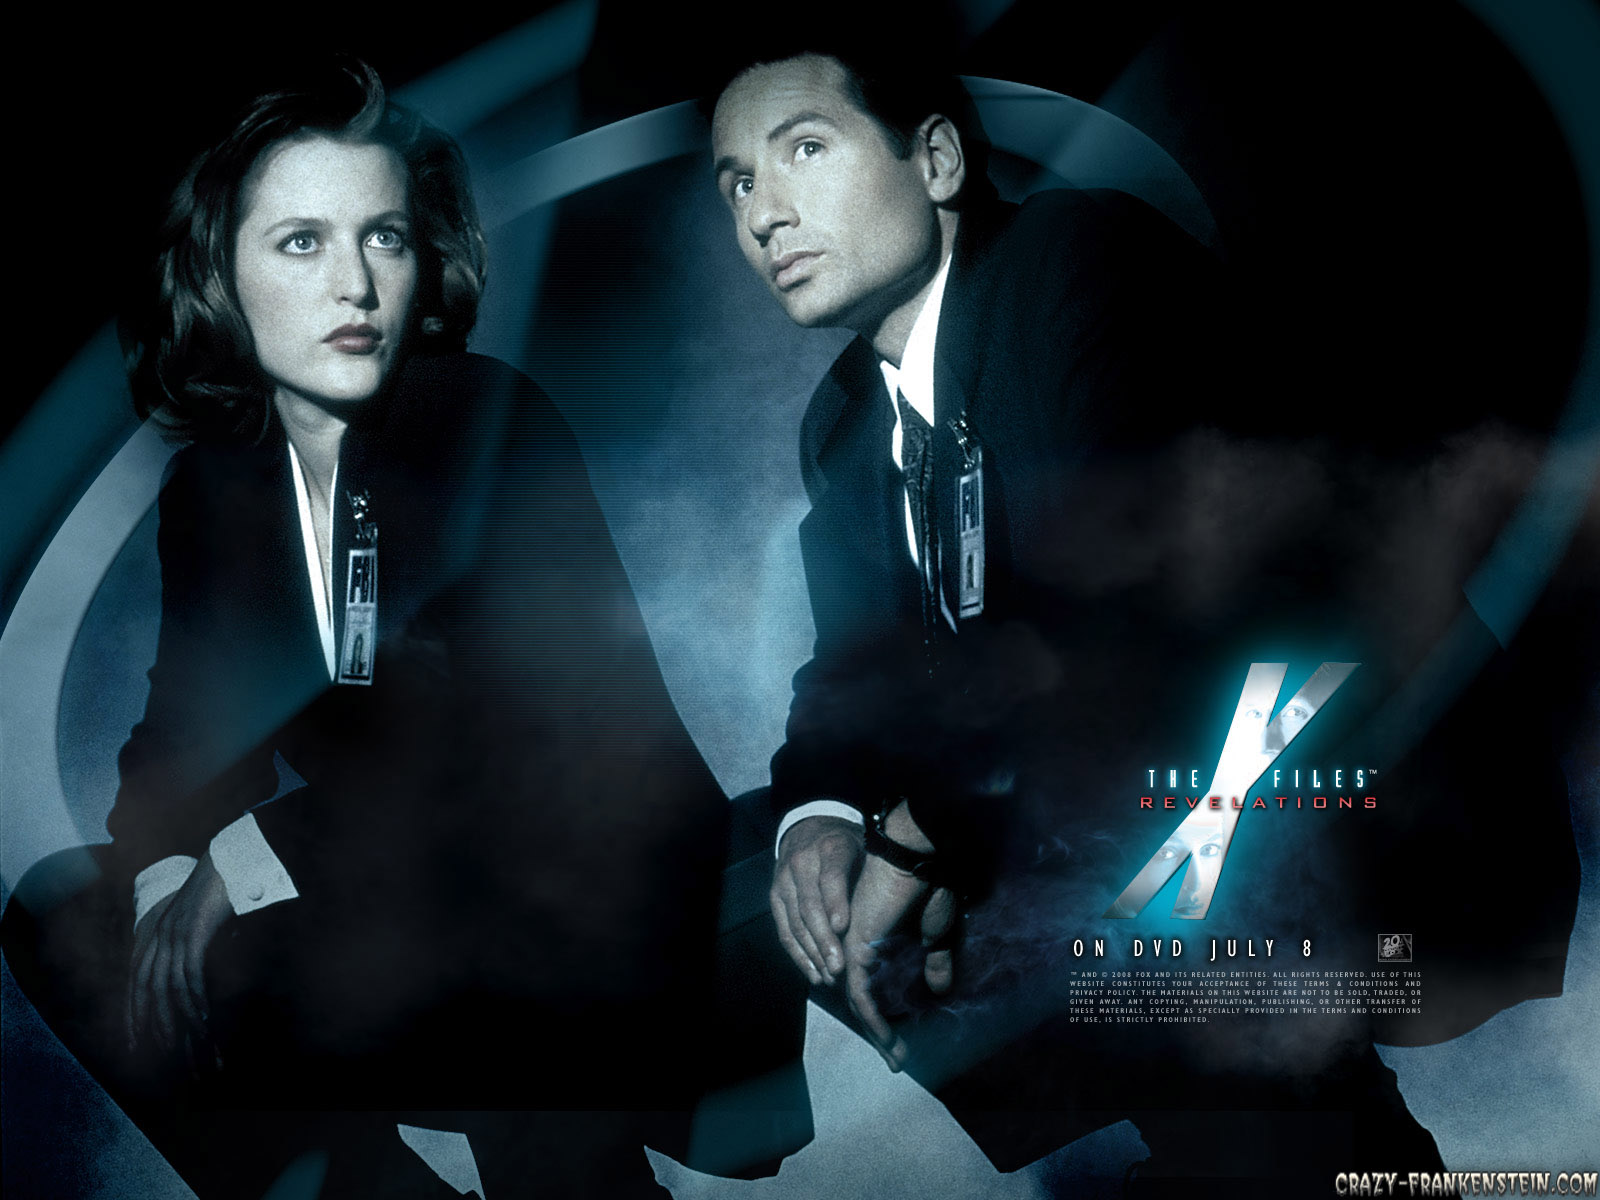 x files wallpaper hd wallpapersafari